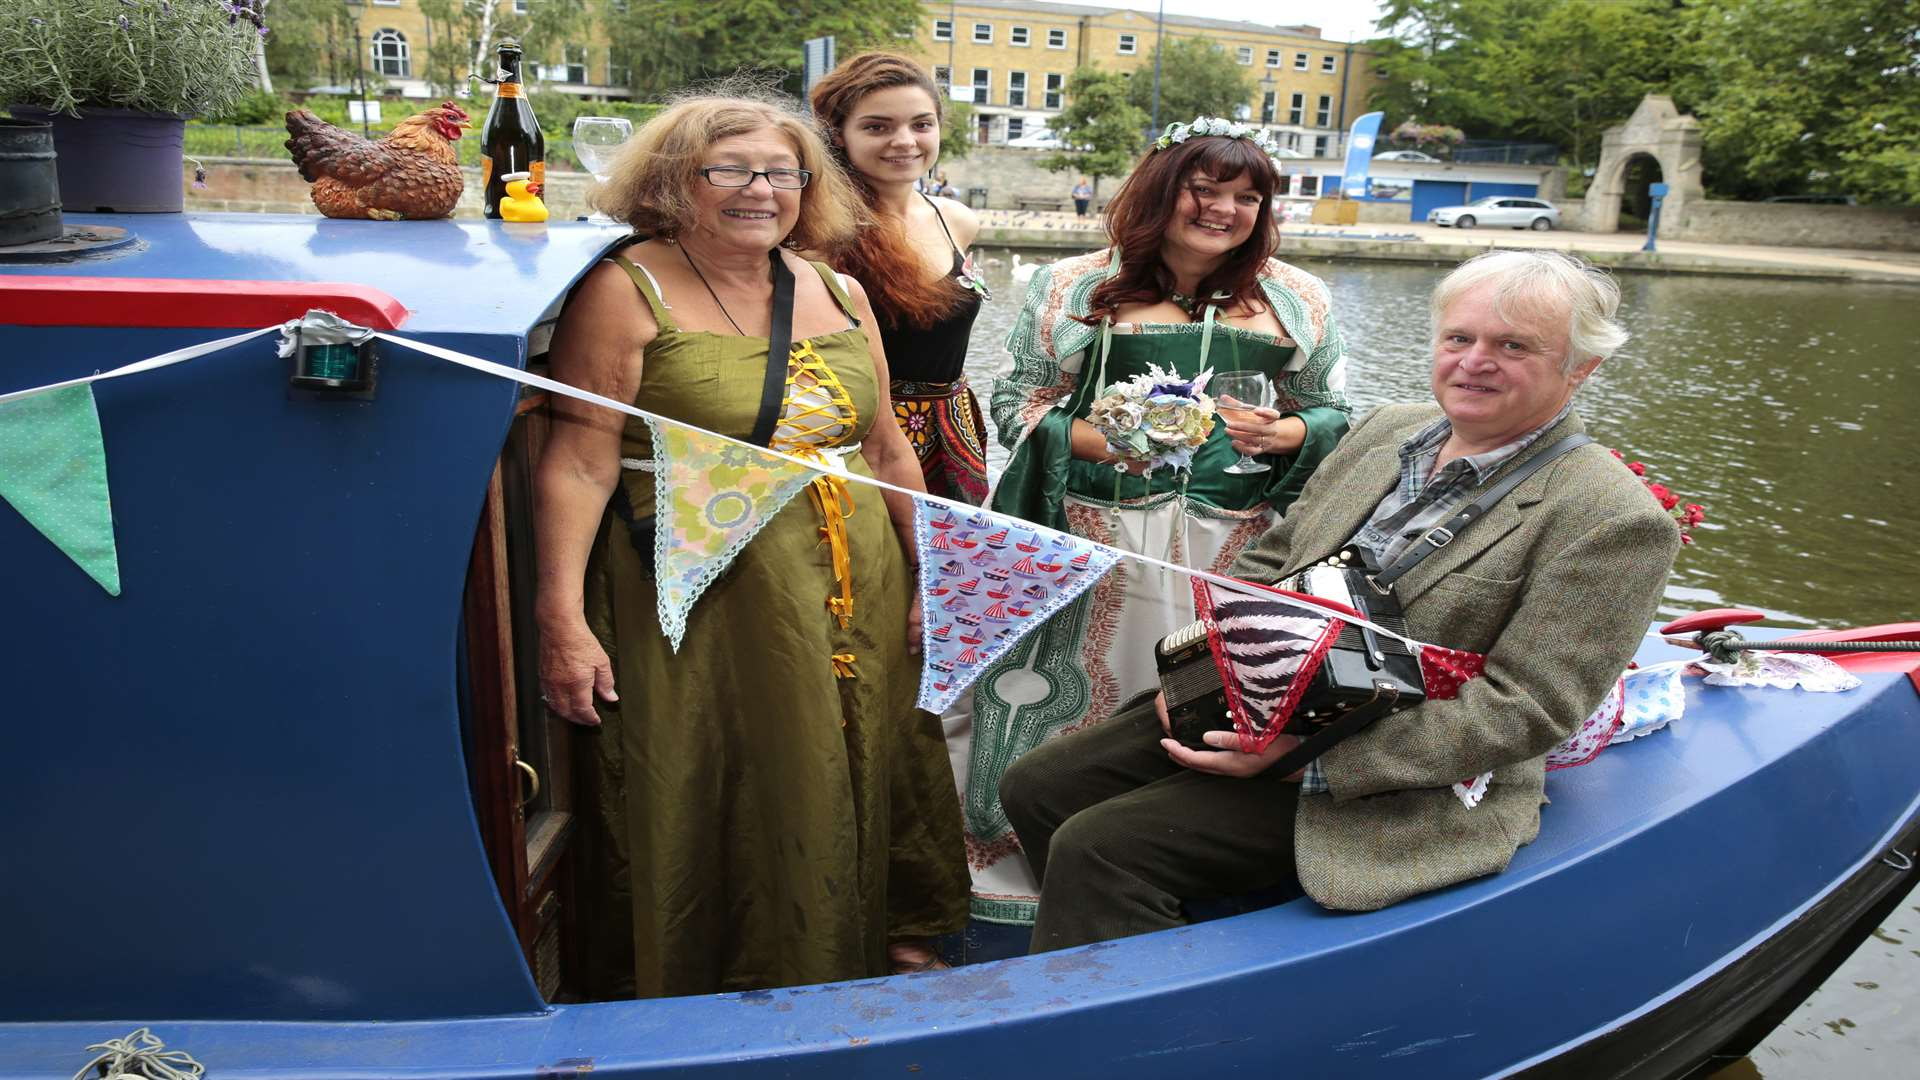 The pair got married on a flotilla of narrow boats